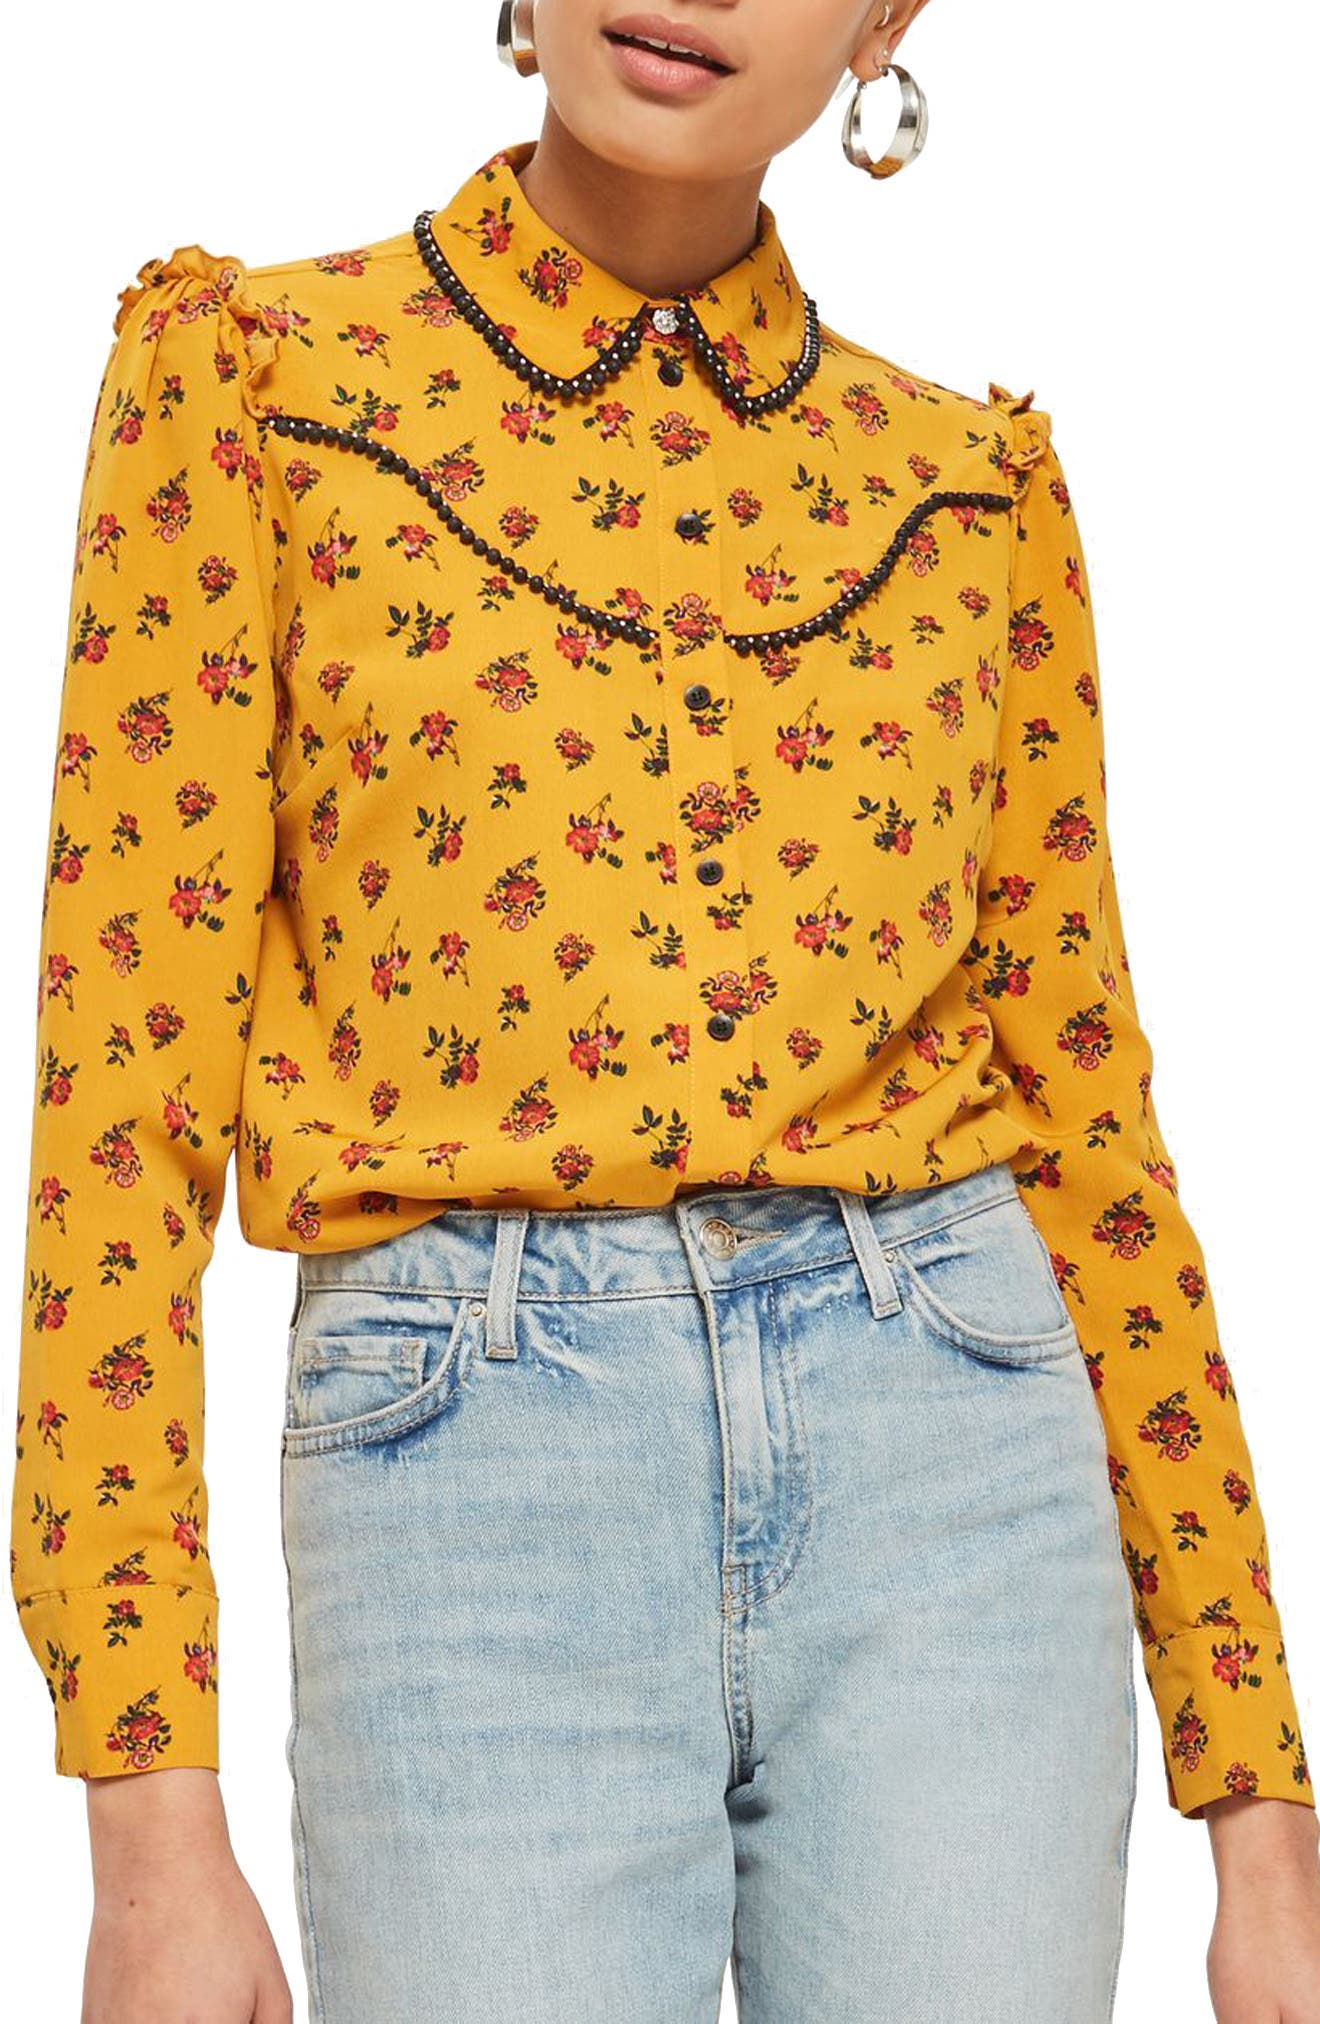 Rodeo Floral Retro Shirt,                         Main,                         color, 701